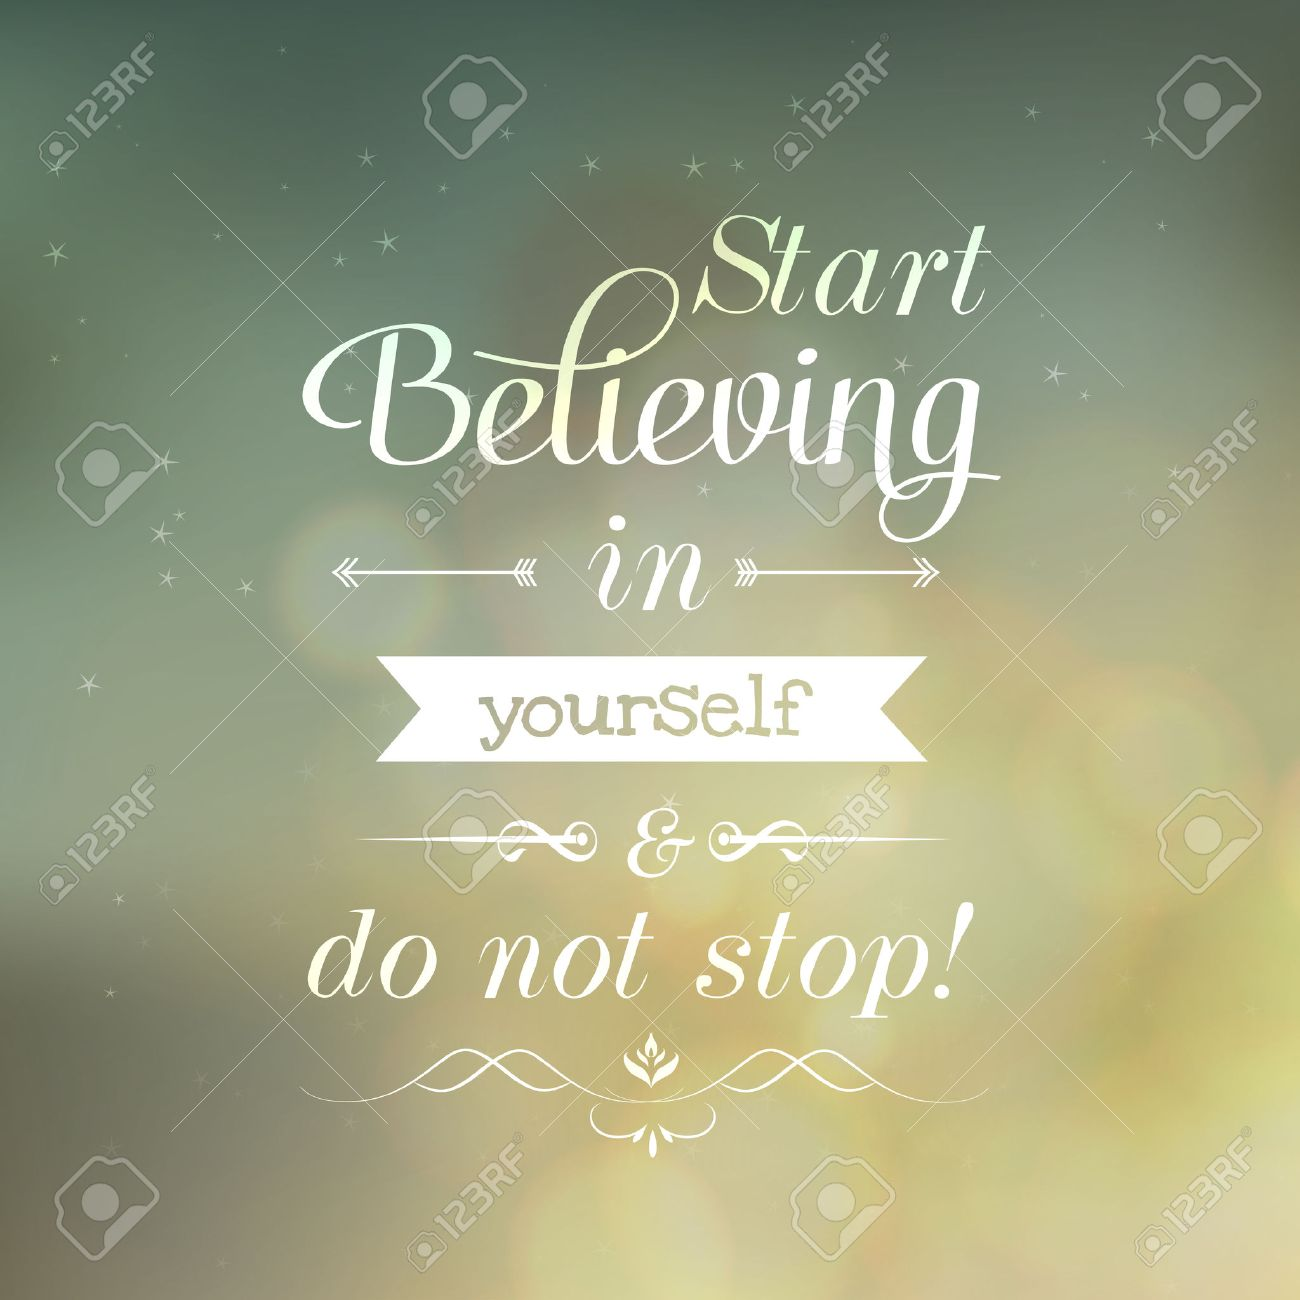 Believing In Yourself Quotes Motivating Quotes Start Believing In Yourself And Do Not Stop